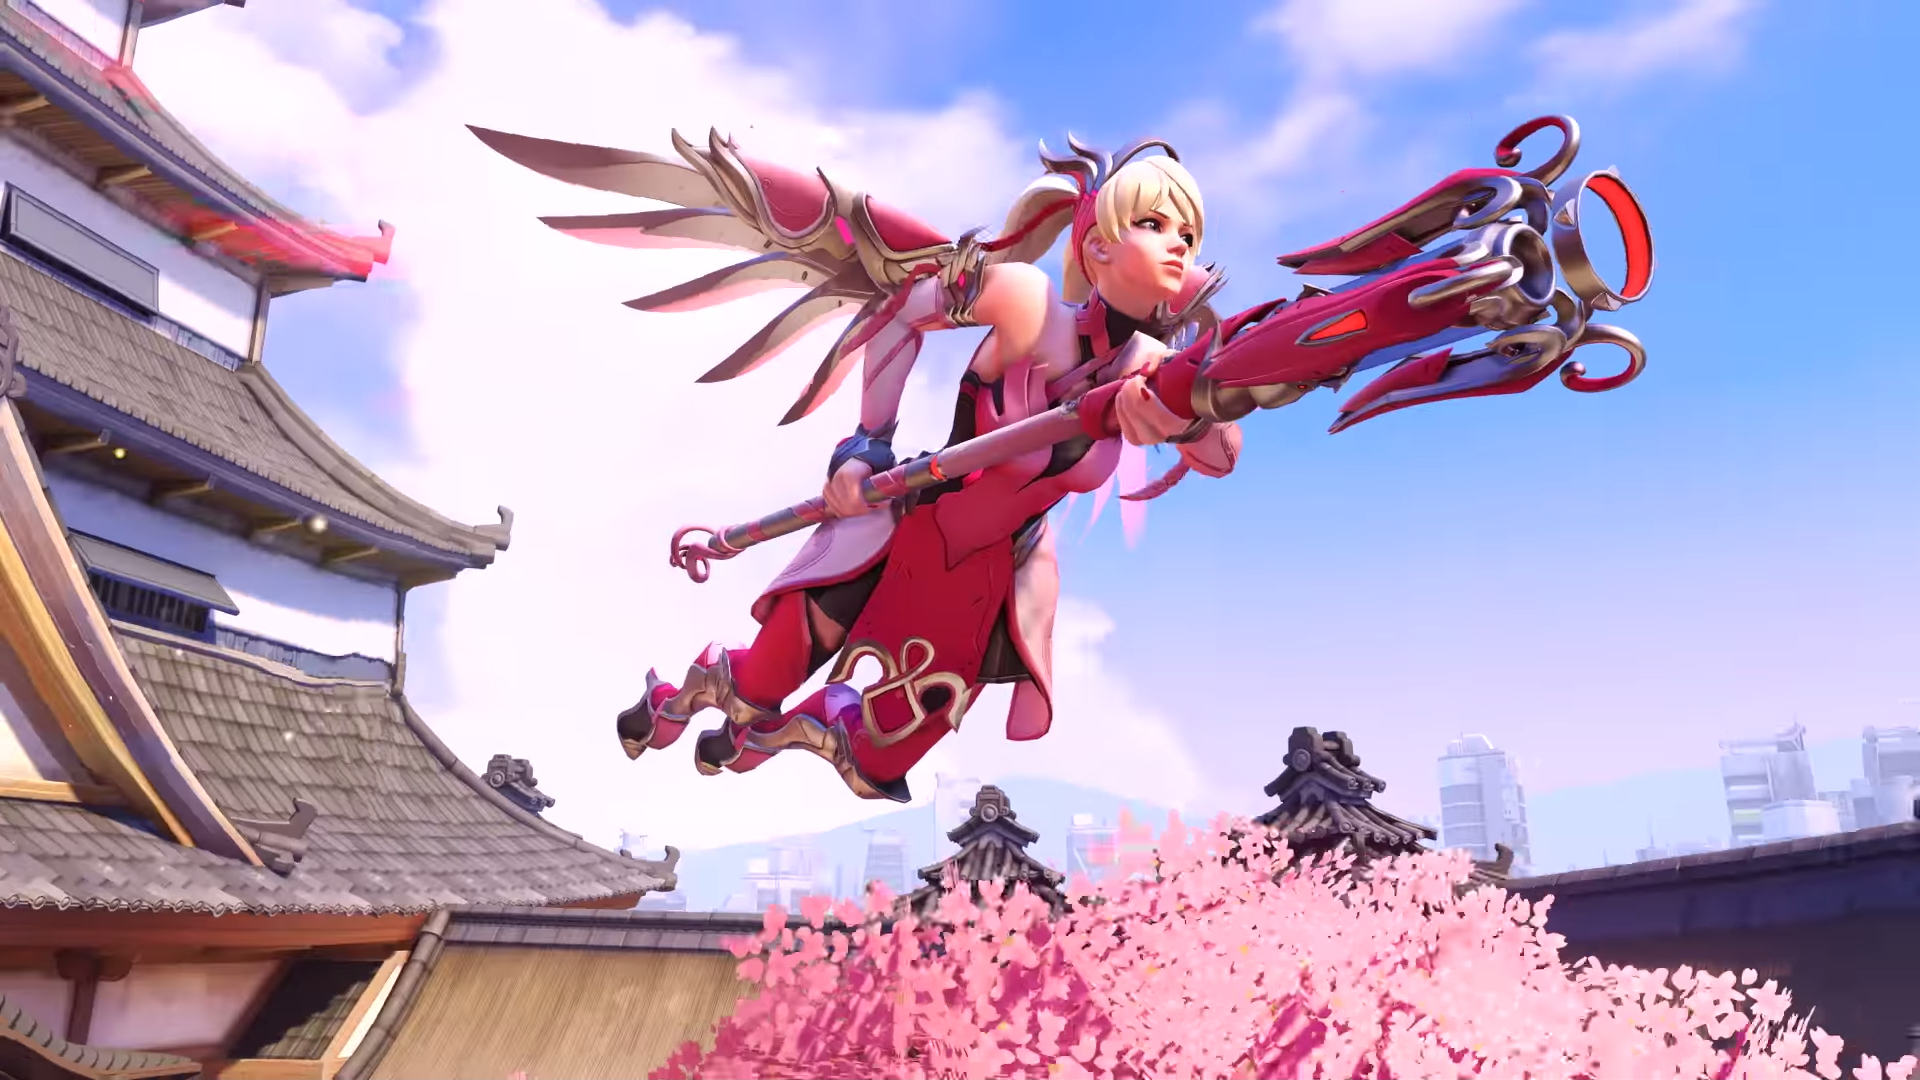 New Pink Overwatch Mercy skin funds Breast Cancer Research